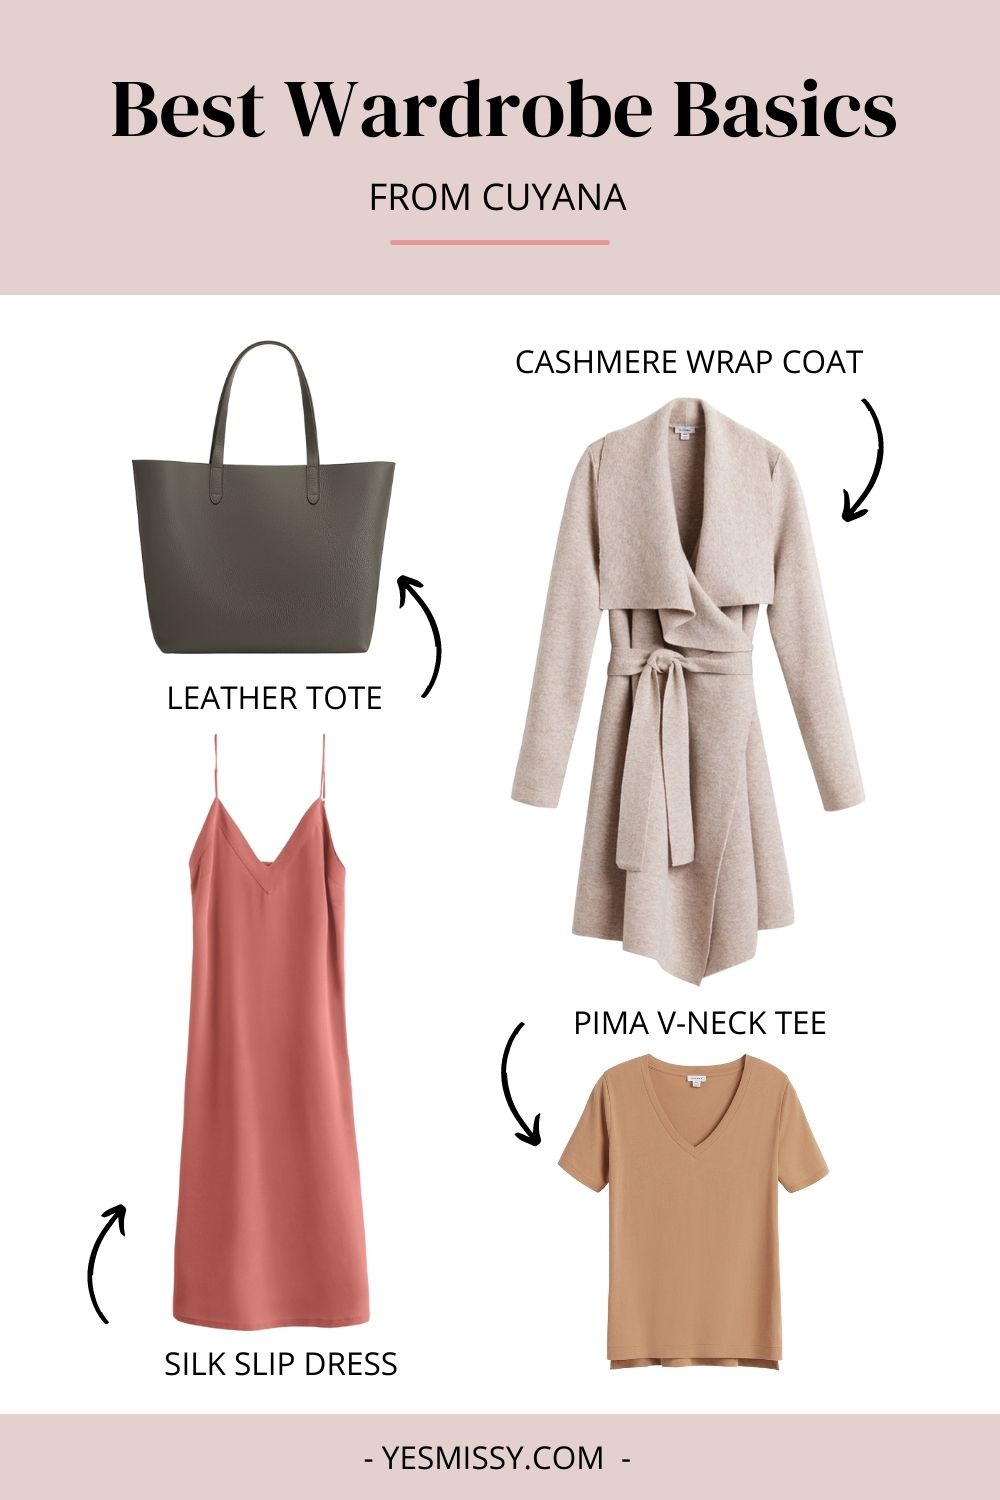 Cuyana is one of the best places to shop for basic wardrobe essentials for women. Their leather totes are a must have! And their clothing is classic and feminine.